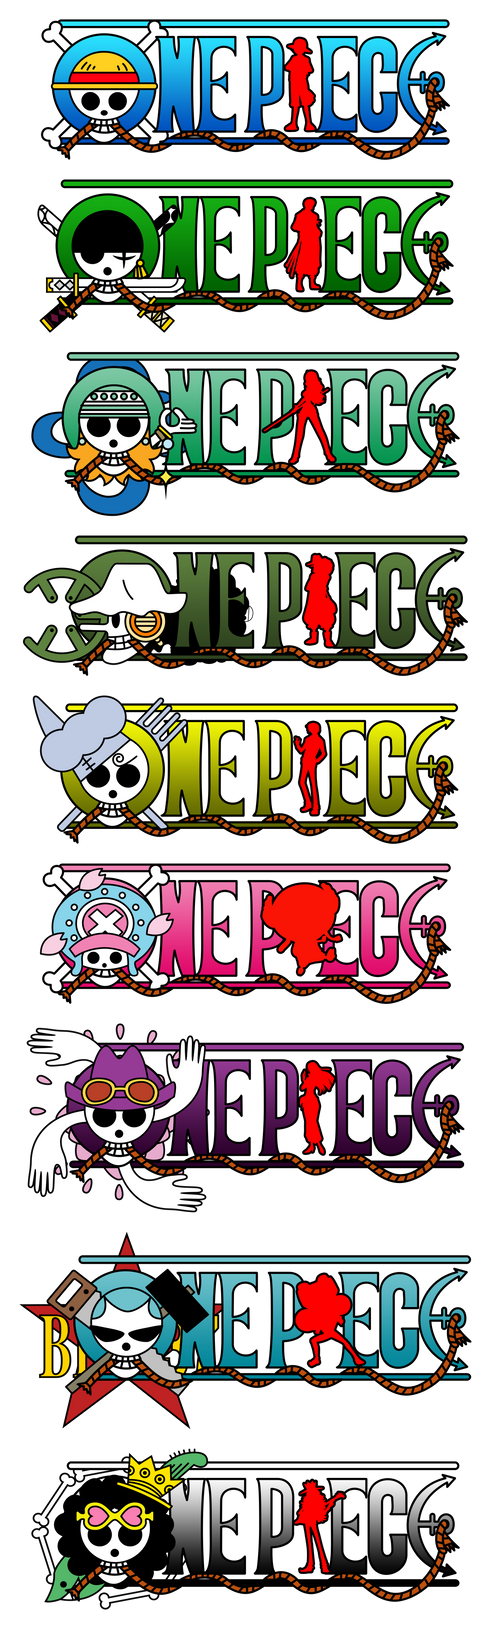 One Piece Logo Straw Hats Crew 2Y Post Timeskip By Mcmgcls